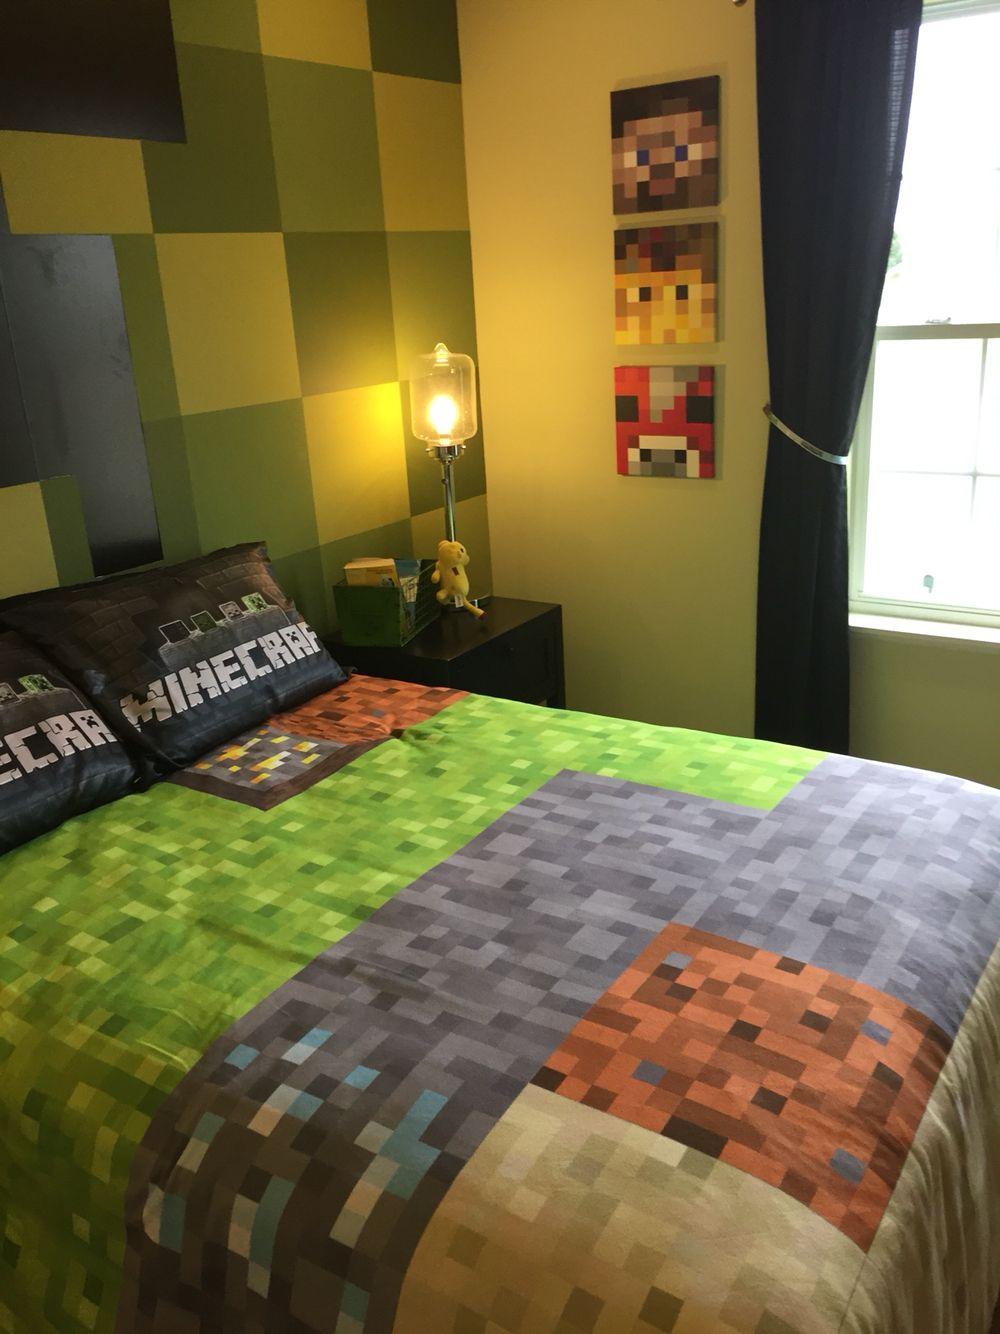 Minecraft bedroom decorations   My little boy  Minec